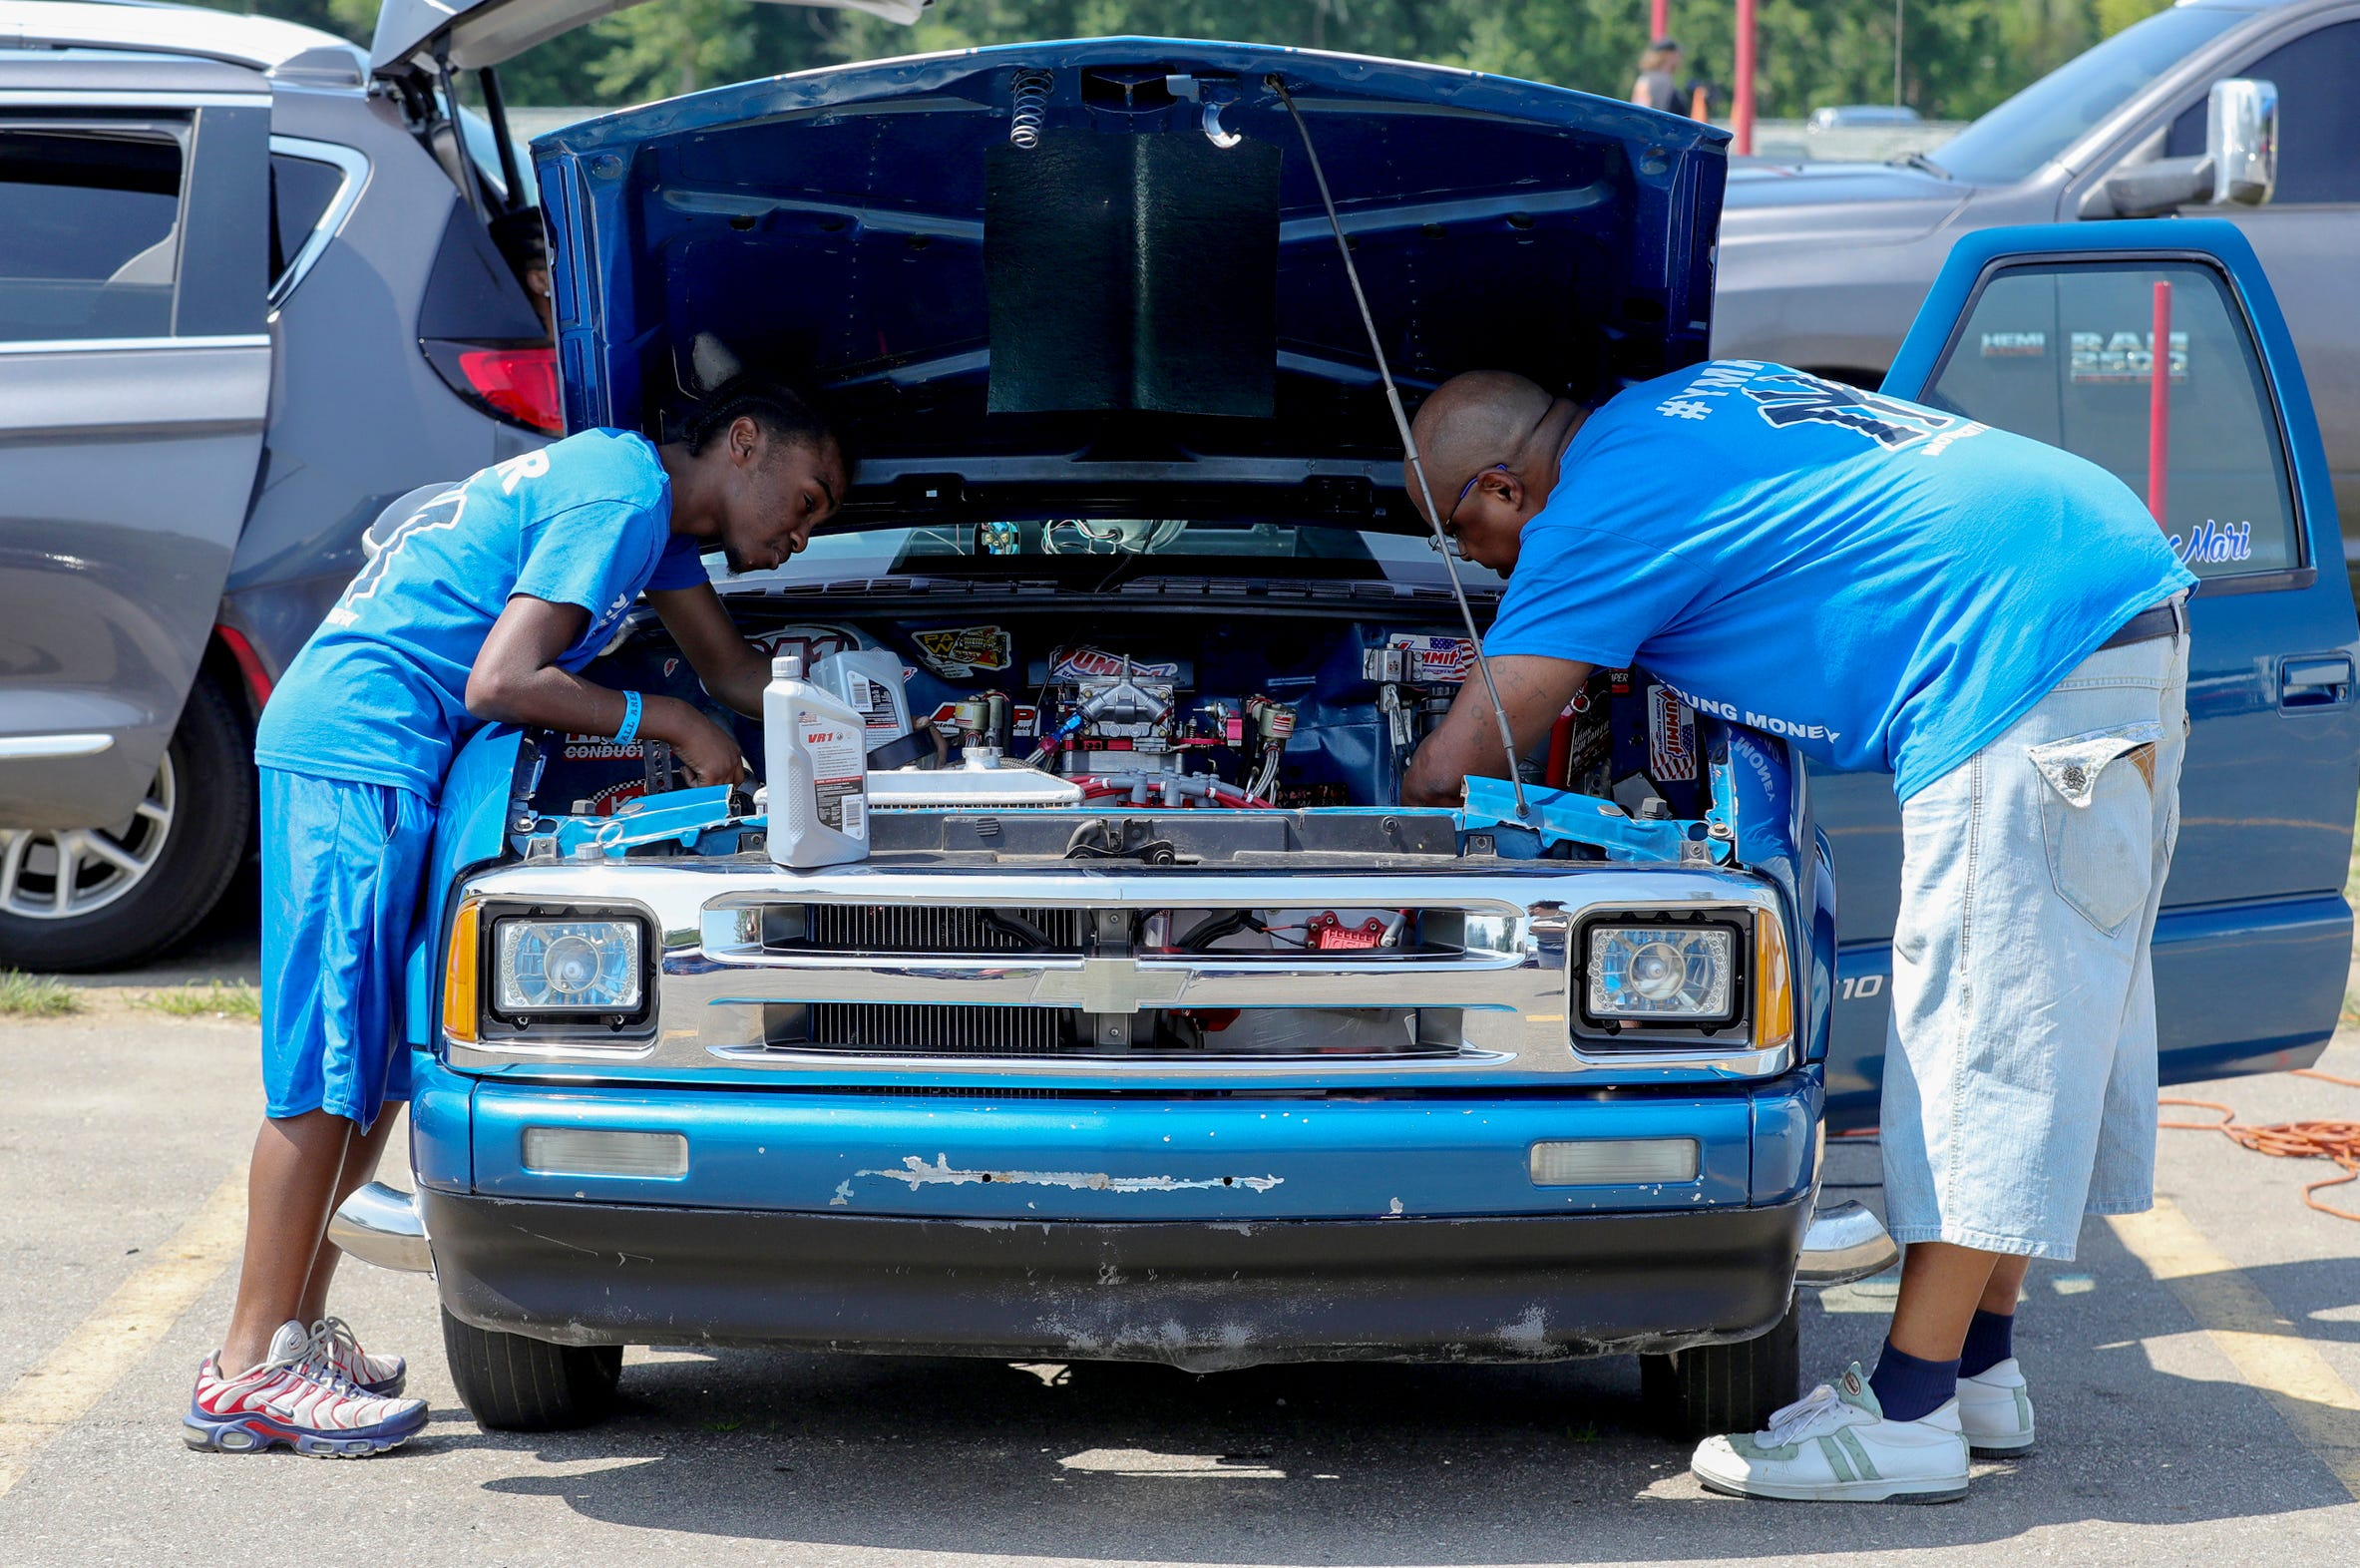 """Joemari Fox, 21, and his dad, Stafford Wilson, put oil in Fox's car, """"Payroll,"""" in the pits before racing in an event sponsored by Payso Productions at Lapeer International Dragway on Saturday, July 17, 2021."""